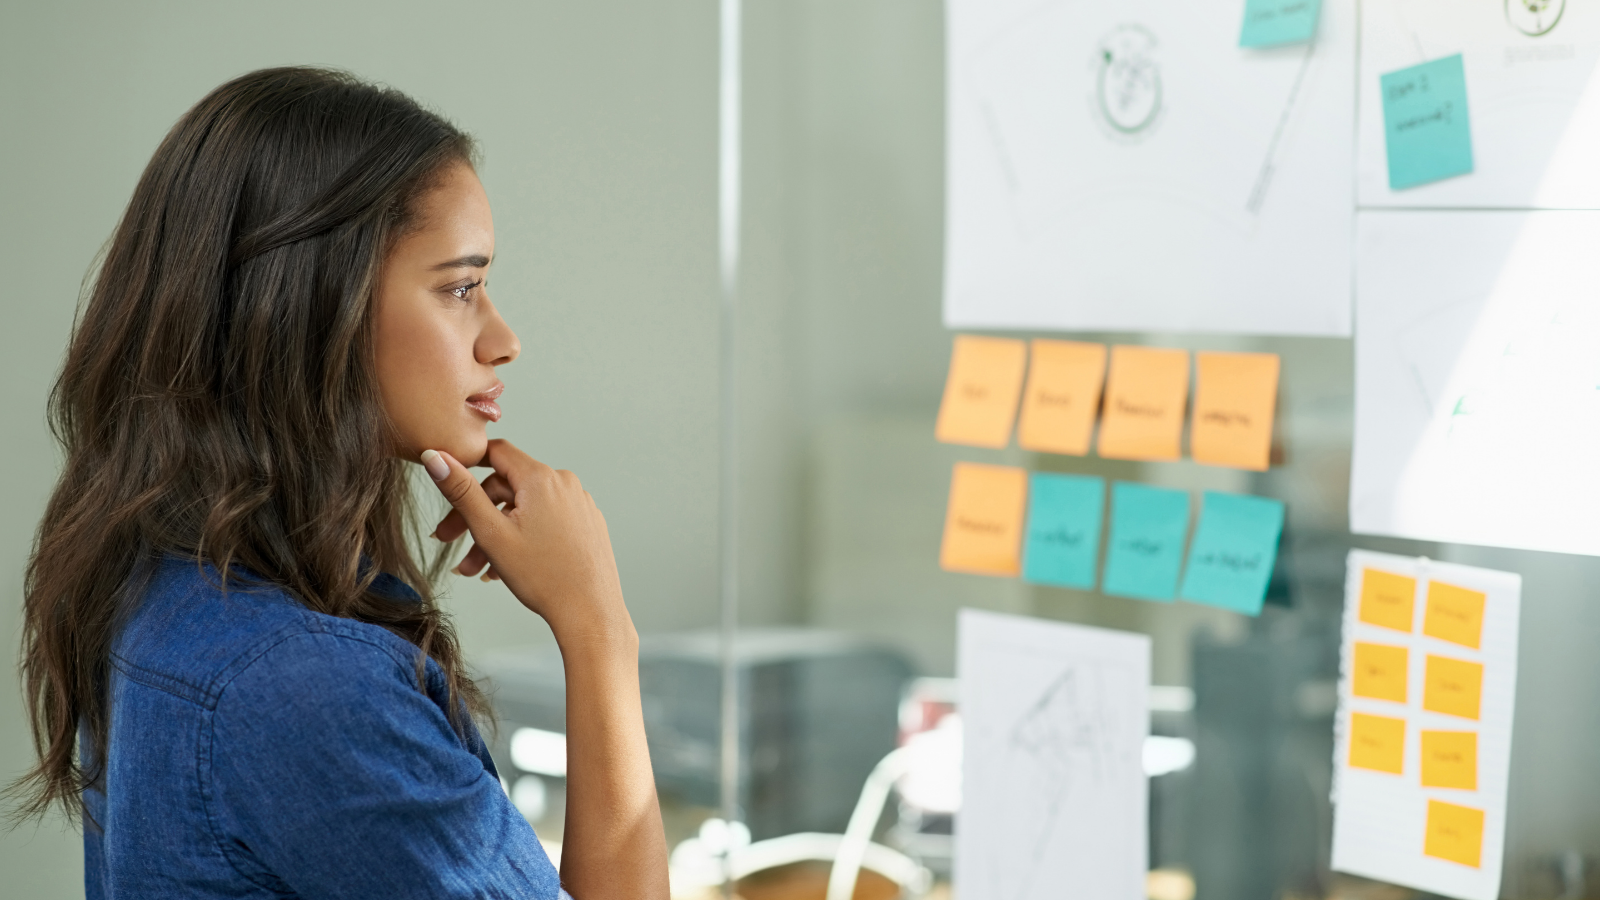 Why The Talent of Problem Solving is Essential for Sales Performance